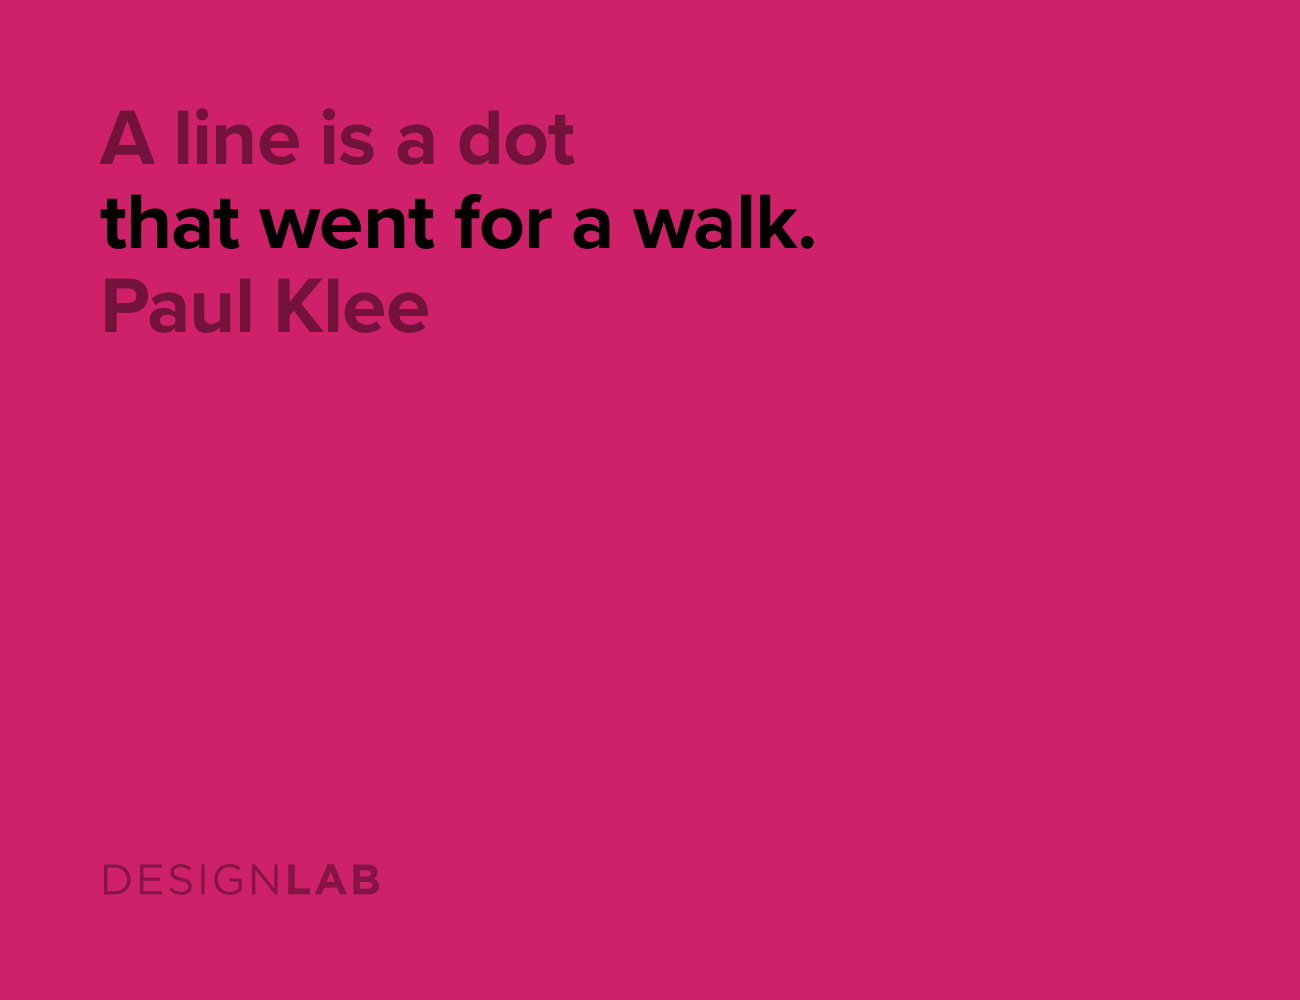 A line is a dot that went for a walk. Paul Klee